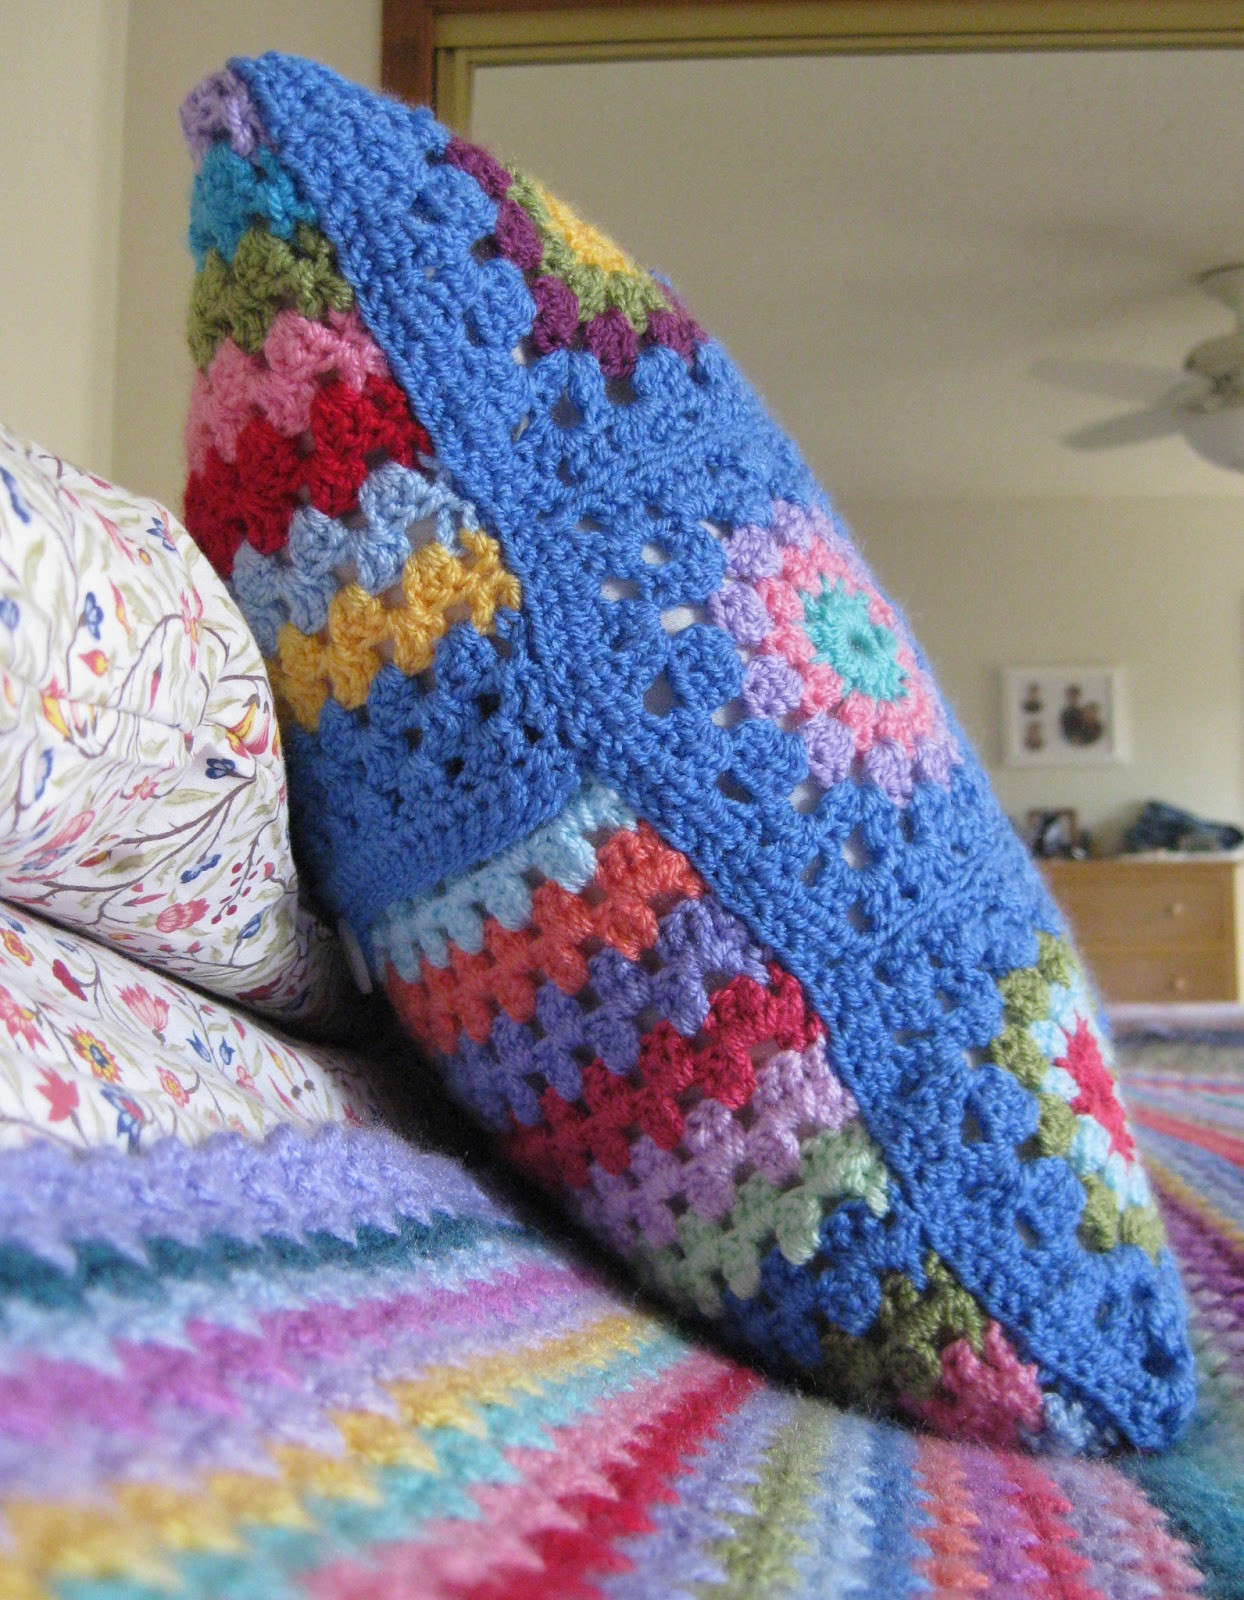 Unique Thistlebear A Crocheted Pillow Cover Crochet Pillow Covers Of Incredible 47 Pics Crochet Pillow Covers